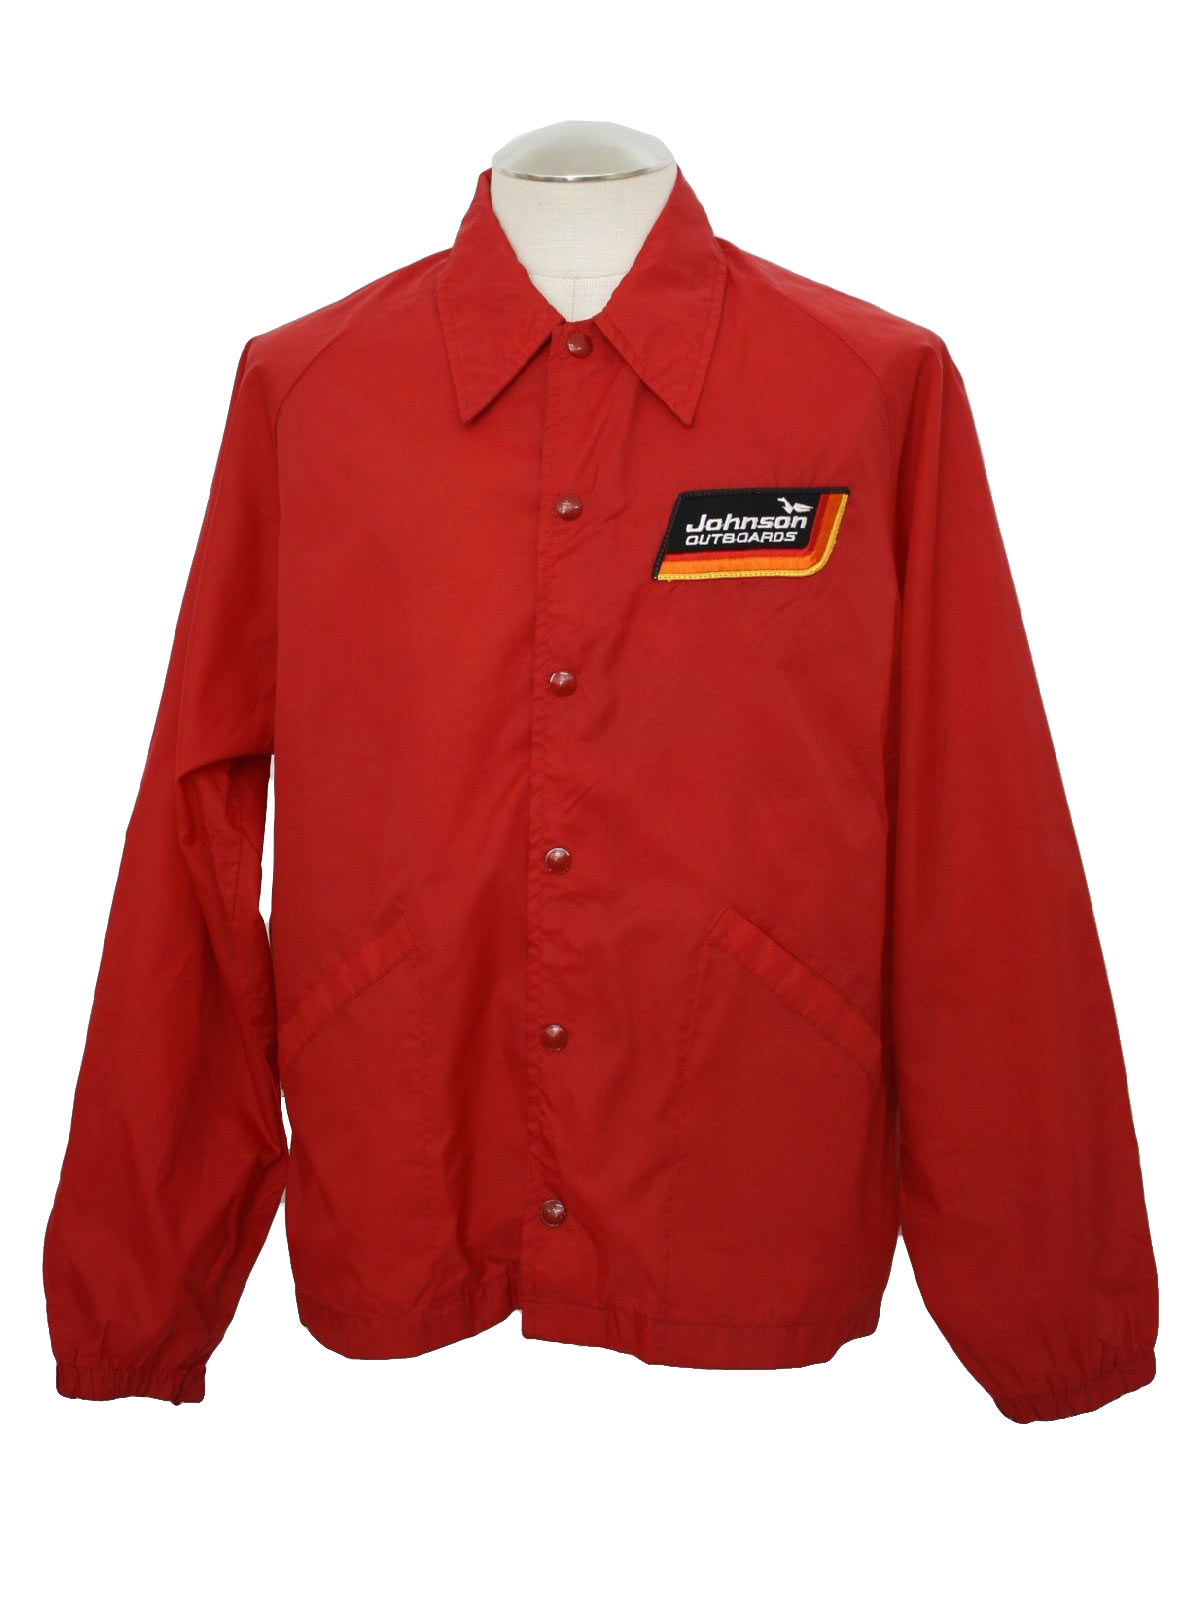 Retro 1980's Jacket (Swingster) : 80s -Swingster- Mens red nylon ...